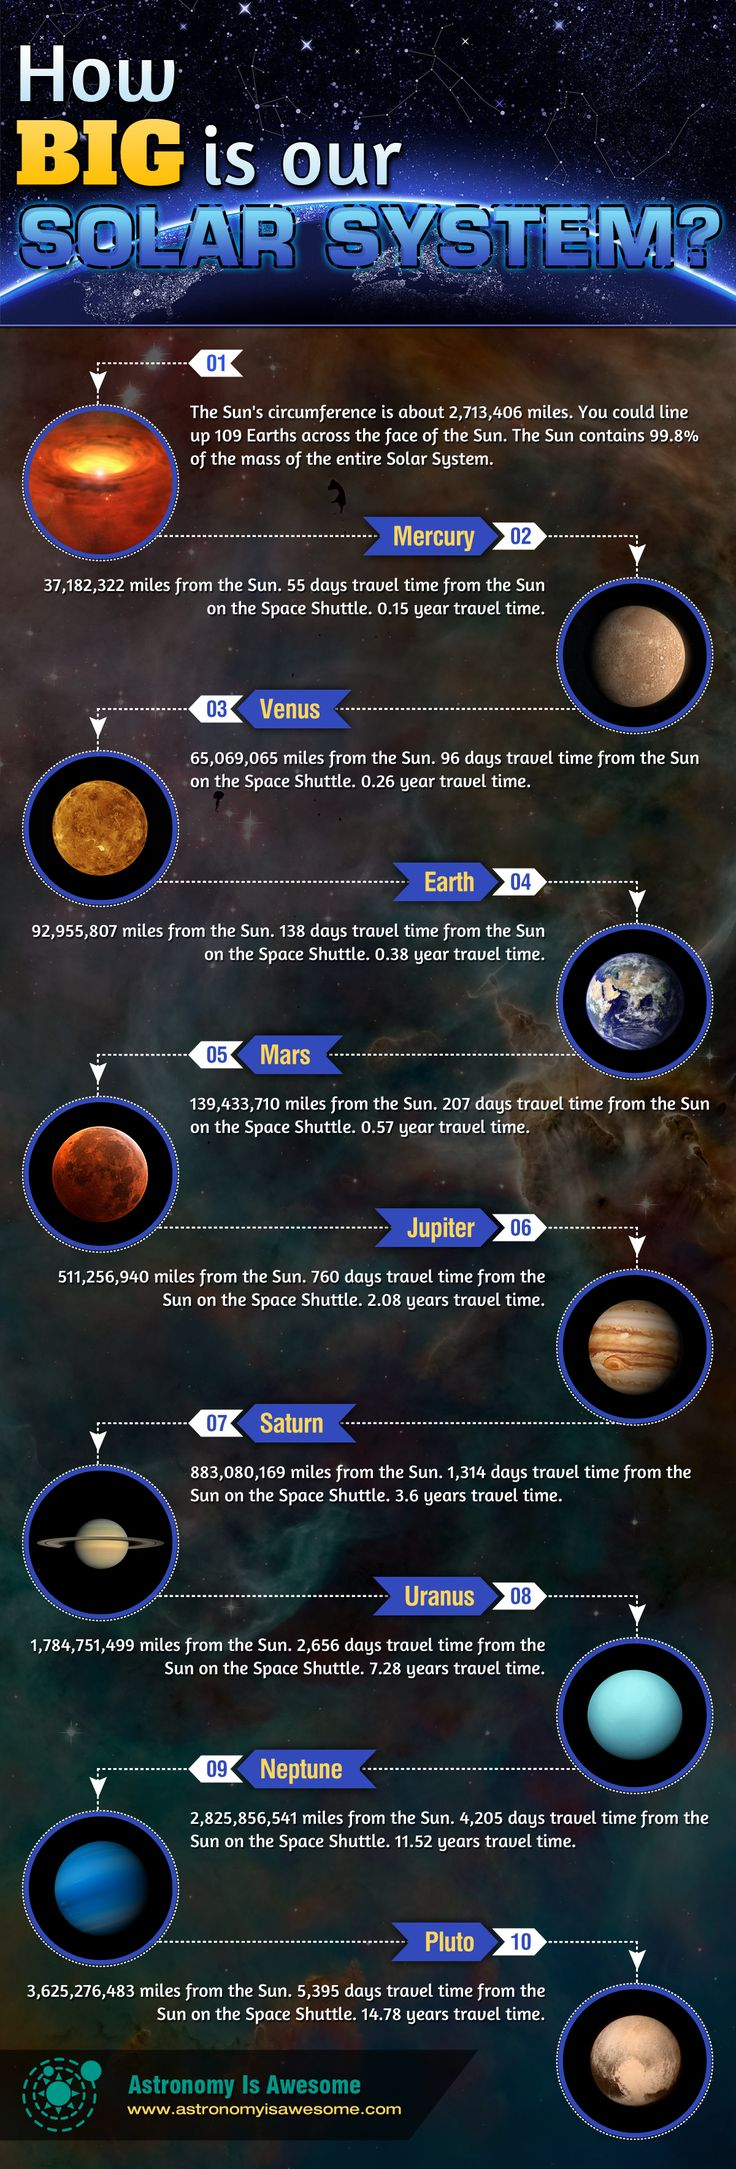 how-big-is-our-solar-system